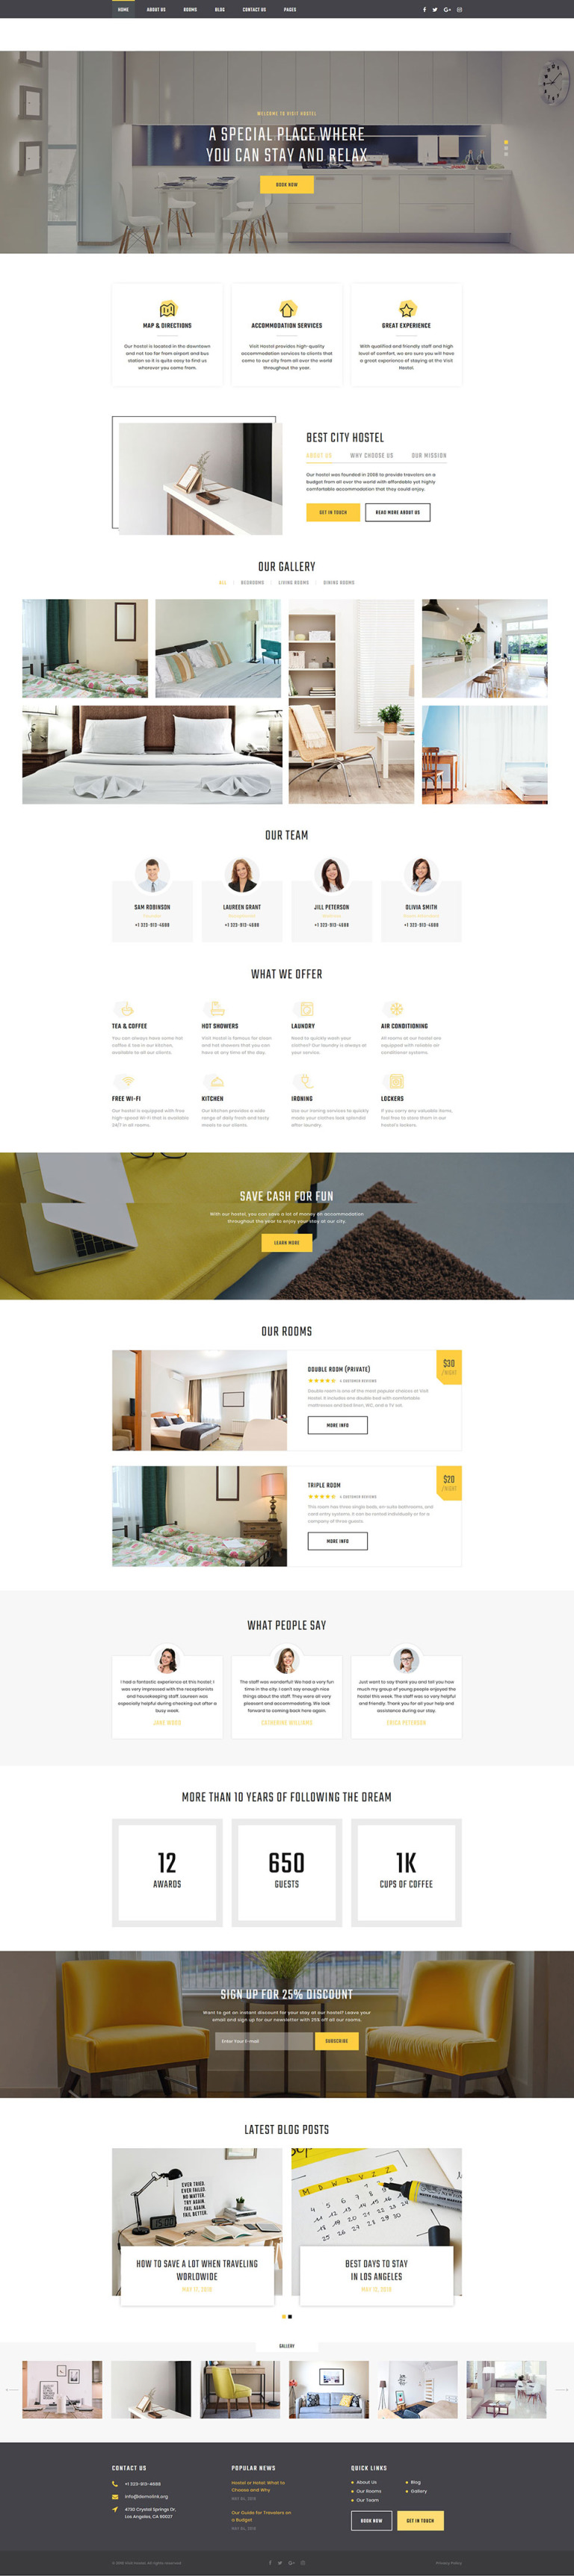 Hostel Website Template New Screenshots BIG